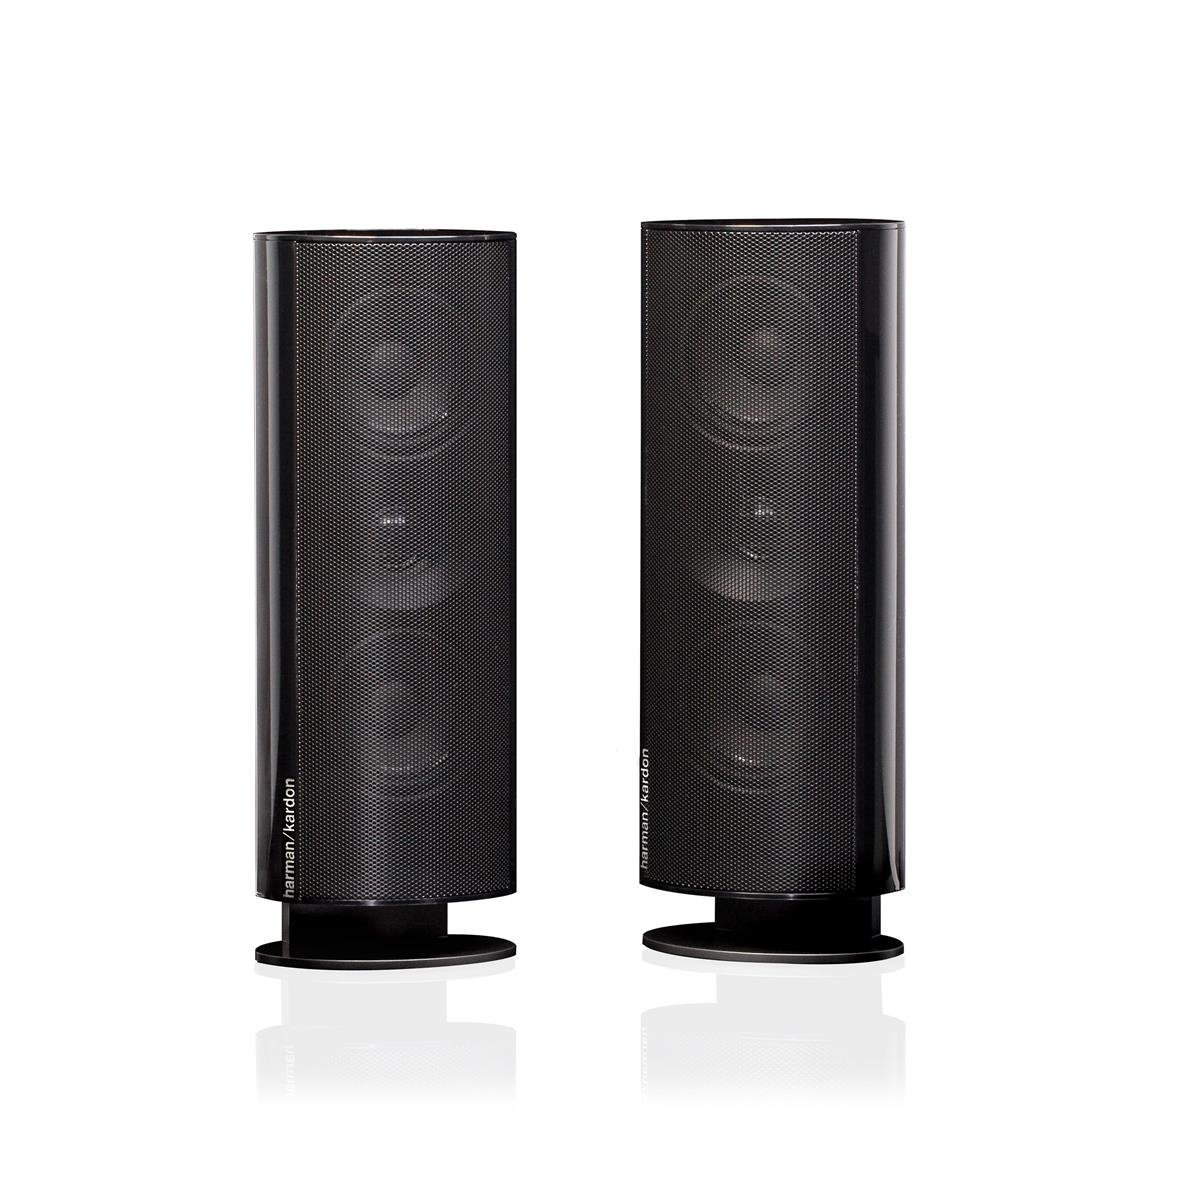 Harman Kardon HKTS 30 Satellite Speakers 30SAT-2 (Pair, Black)